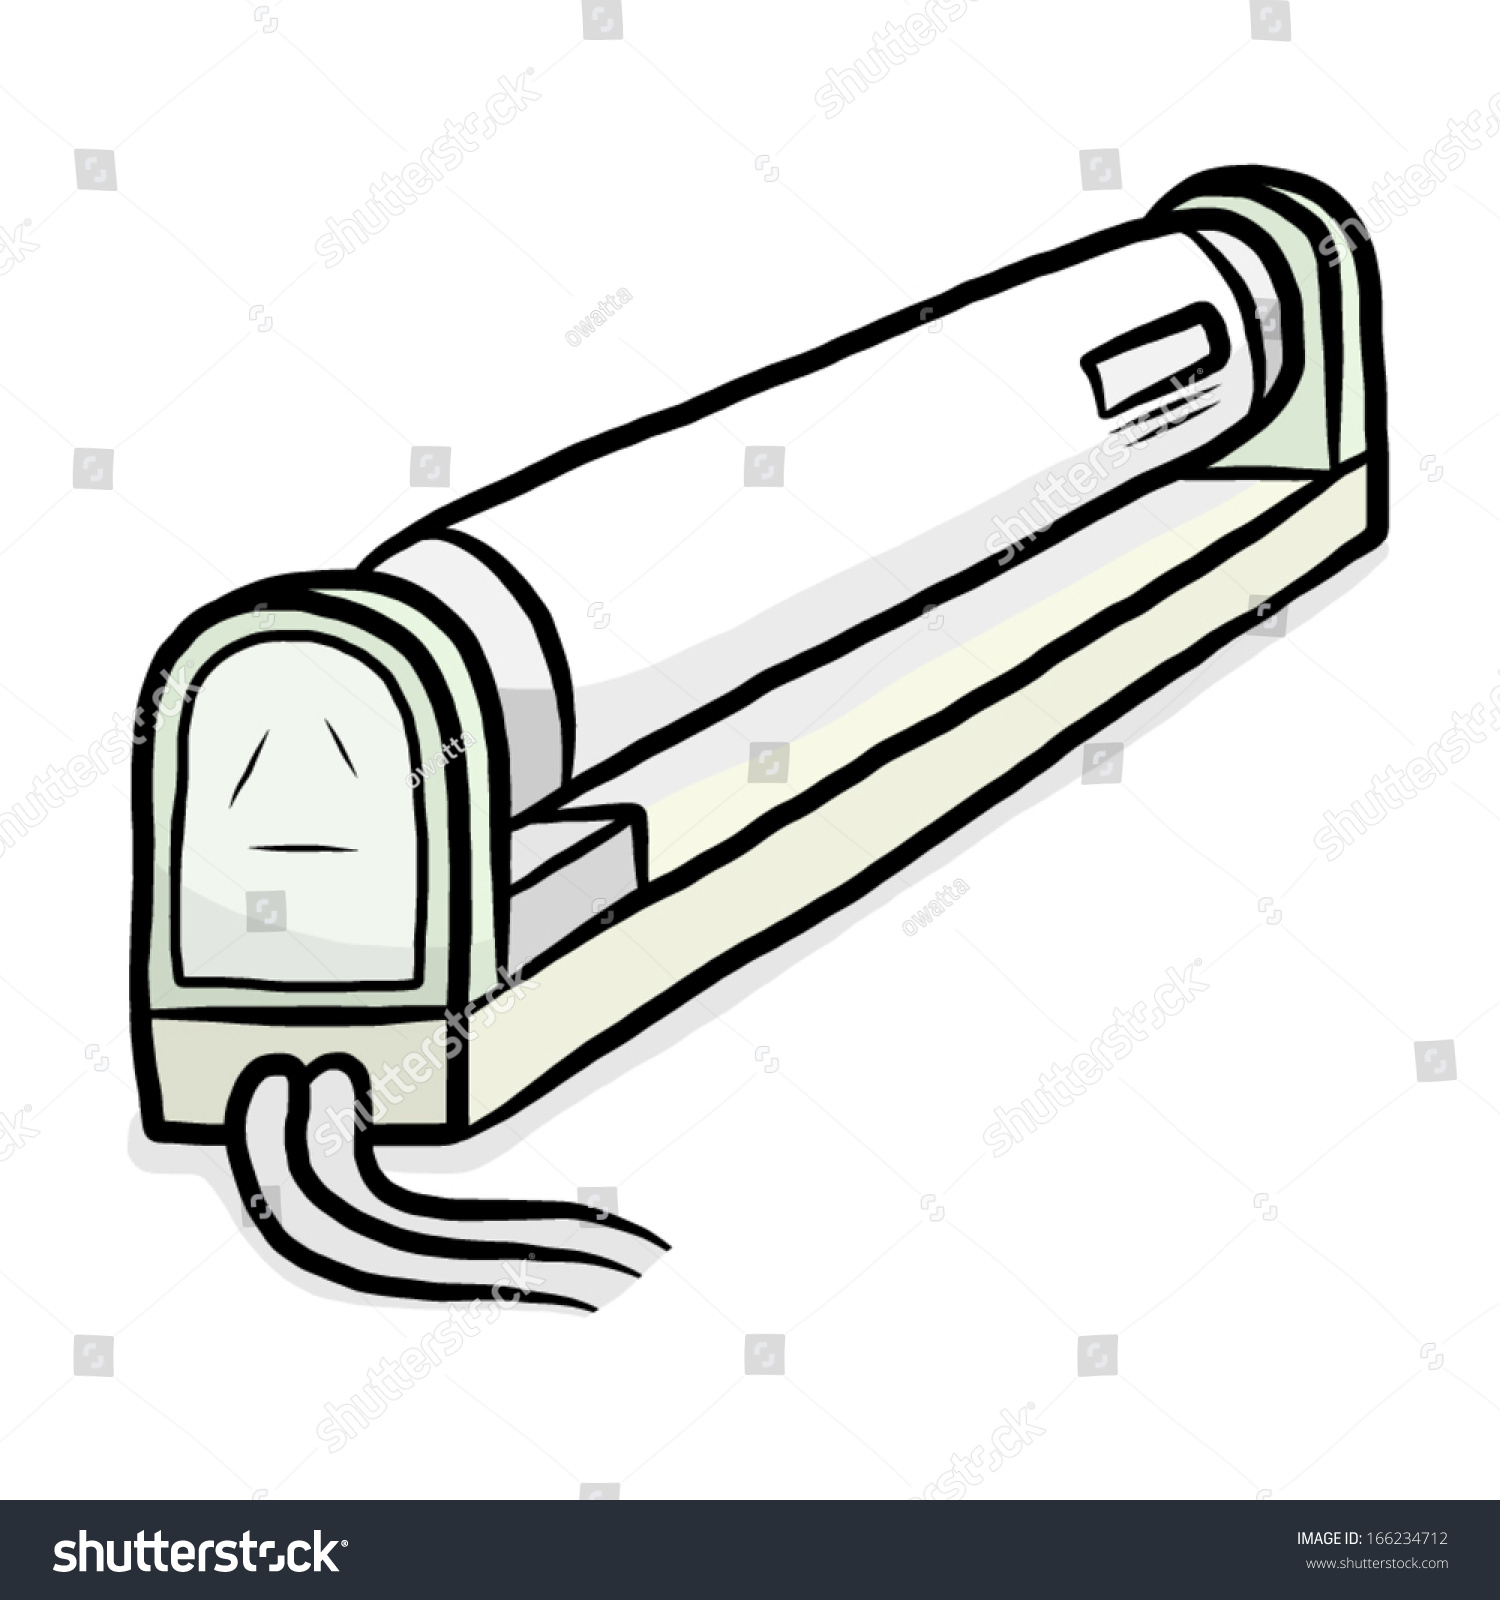 Fluorescent Lamp Cartoon Vector Illustration Isolated Stock Vector ... for Fluorescent Tube Drawing  181pct